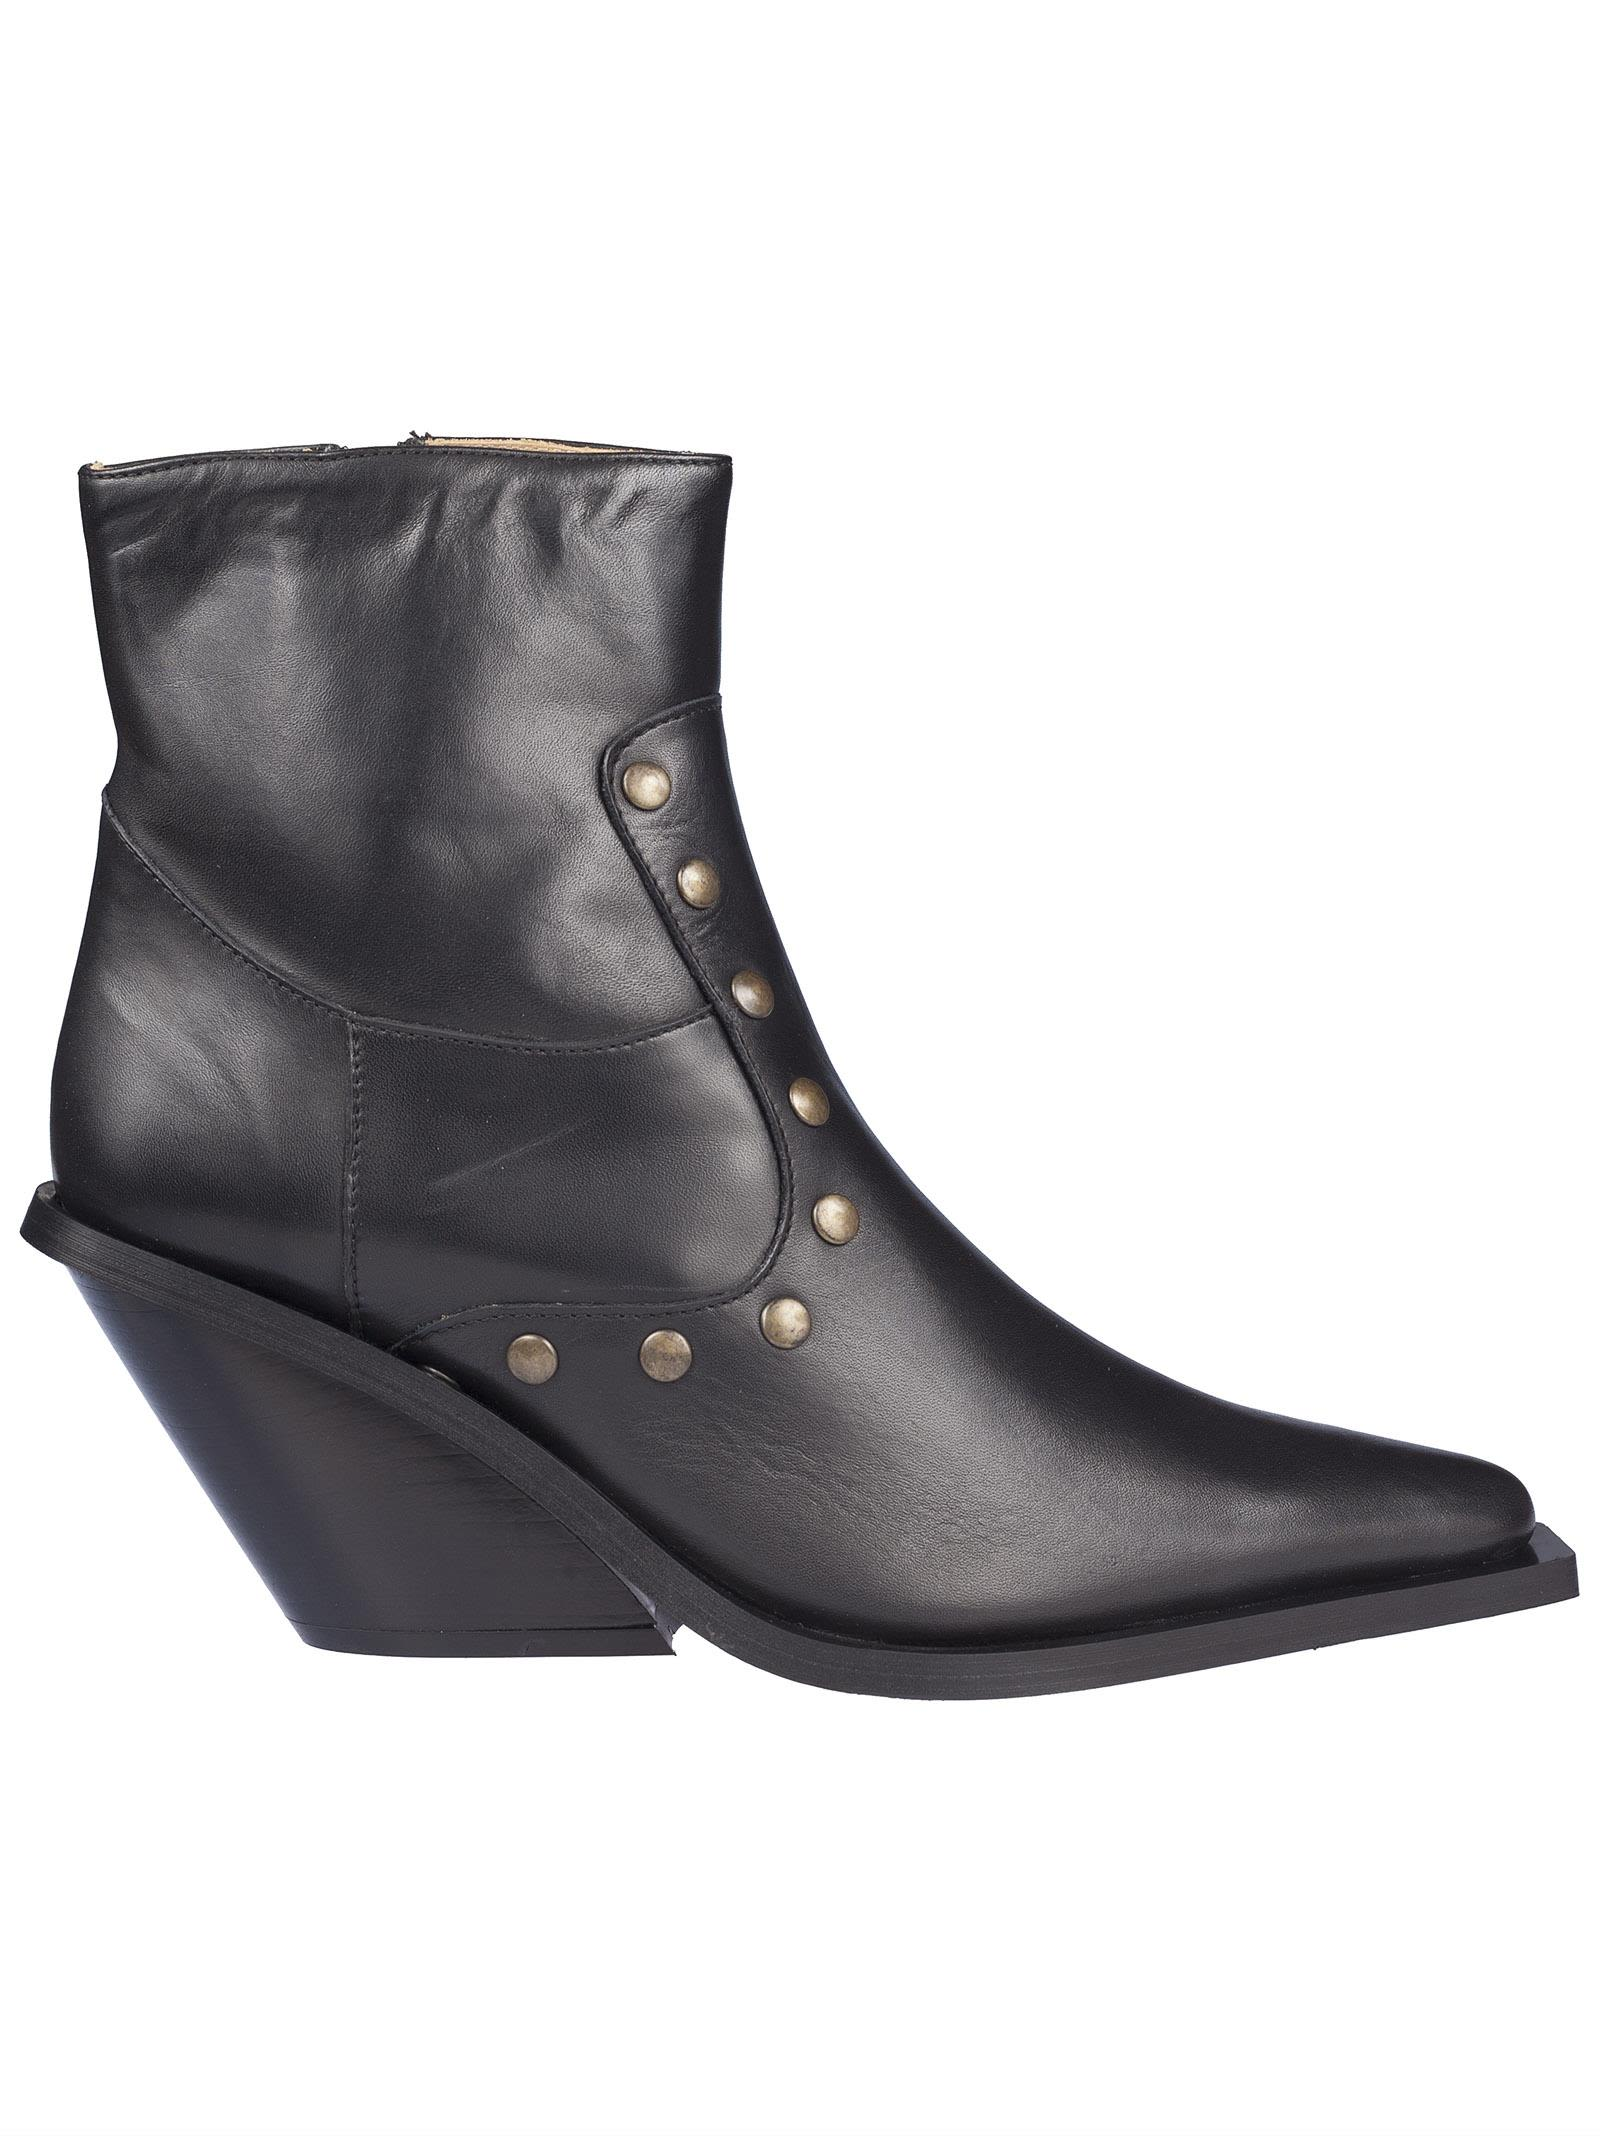 Gia Couture Studded Ankle Boots - Black